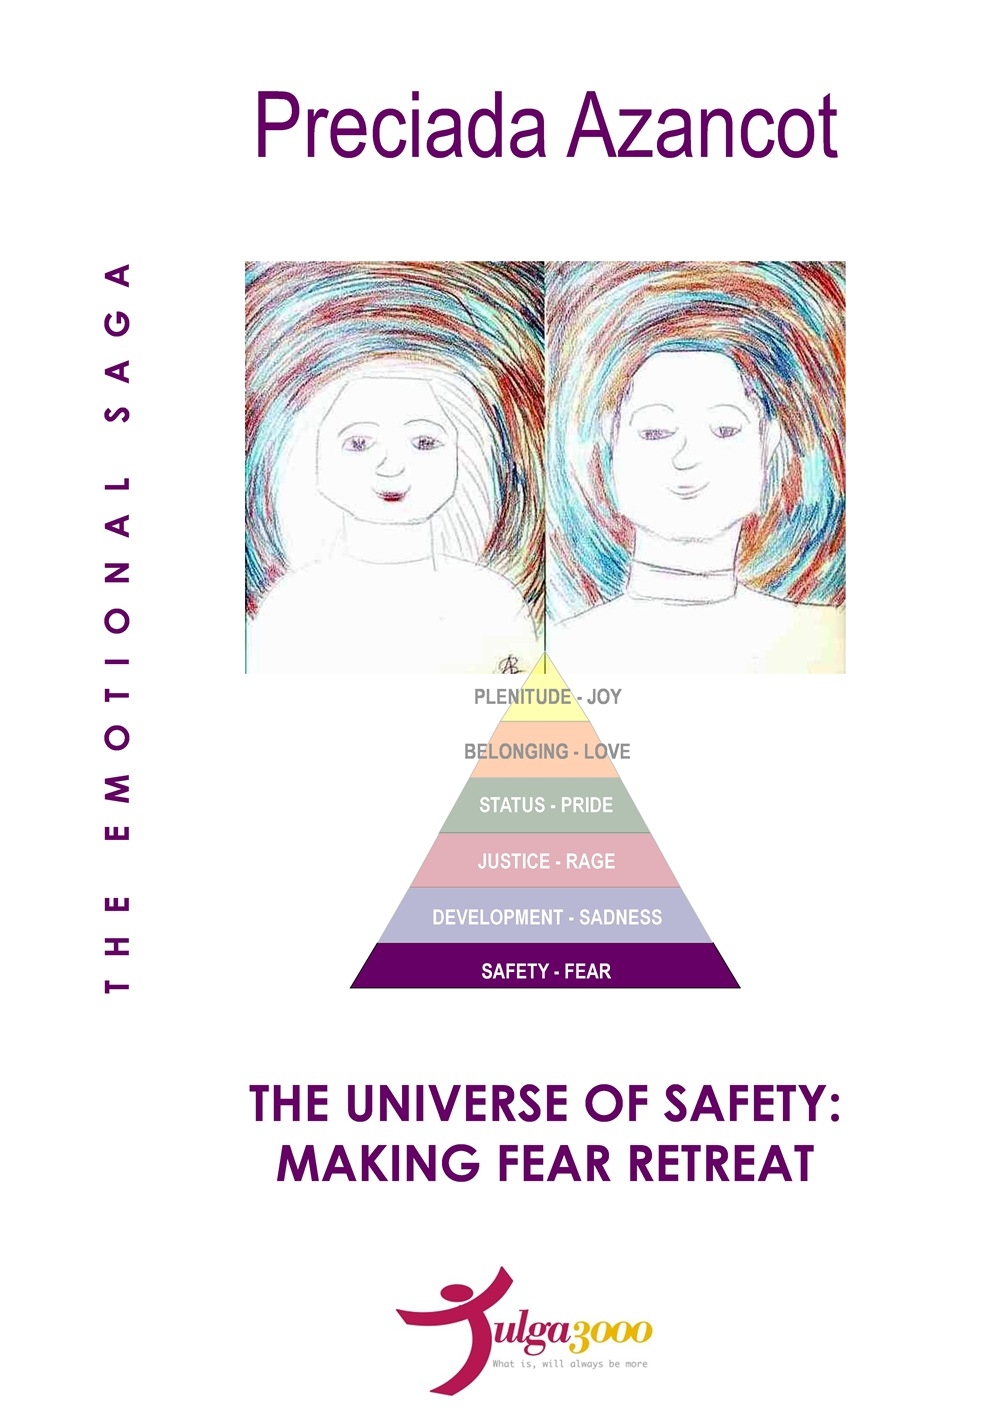 The book of your safety, by Preciada Azancot - Cover